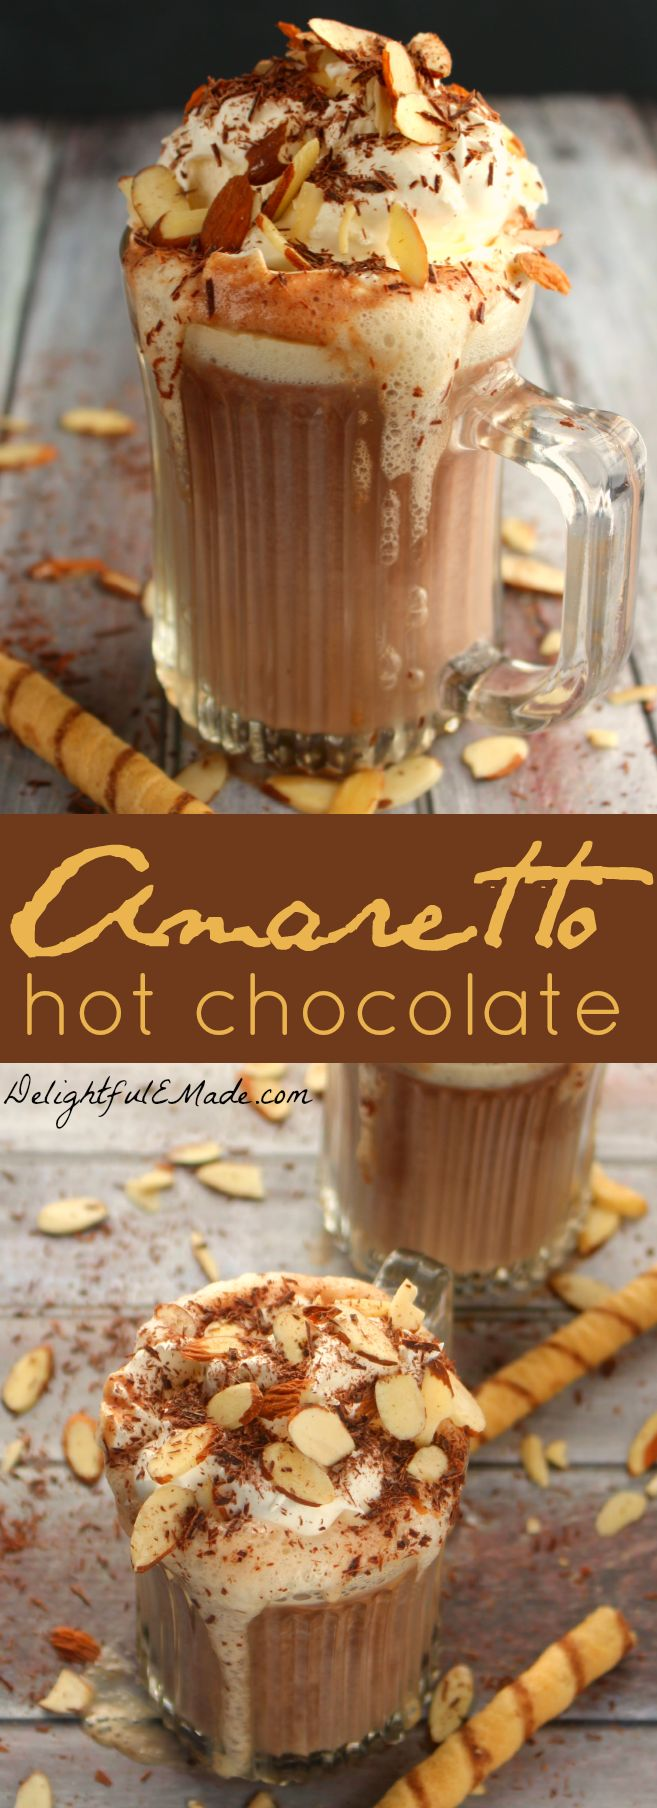 Flavored with Amaretto Liquor for a subtle almond flavor and rich chocolate, this Amaretto Hot Chocolate is the most decadently delicious drink perfect on a cold night!